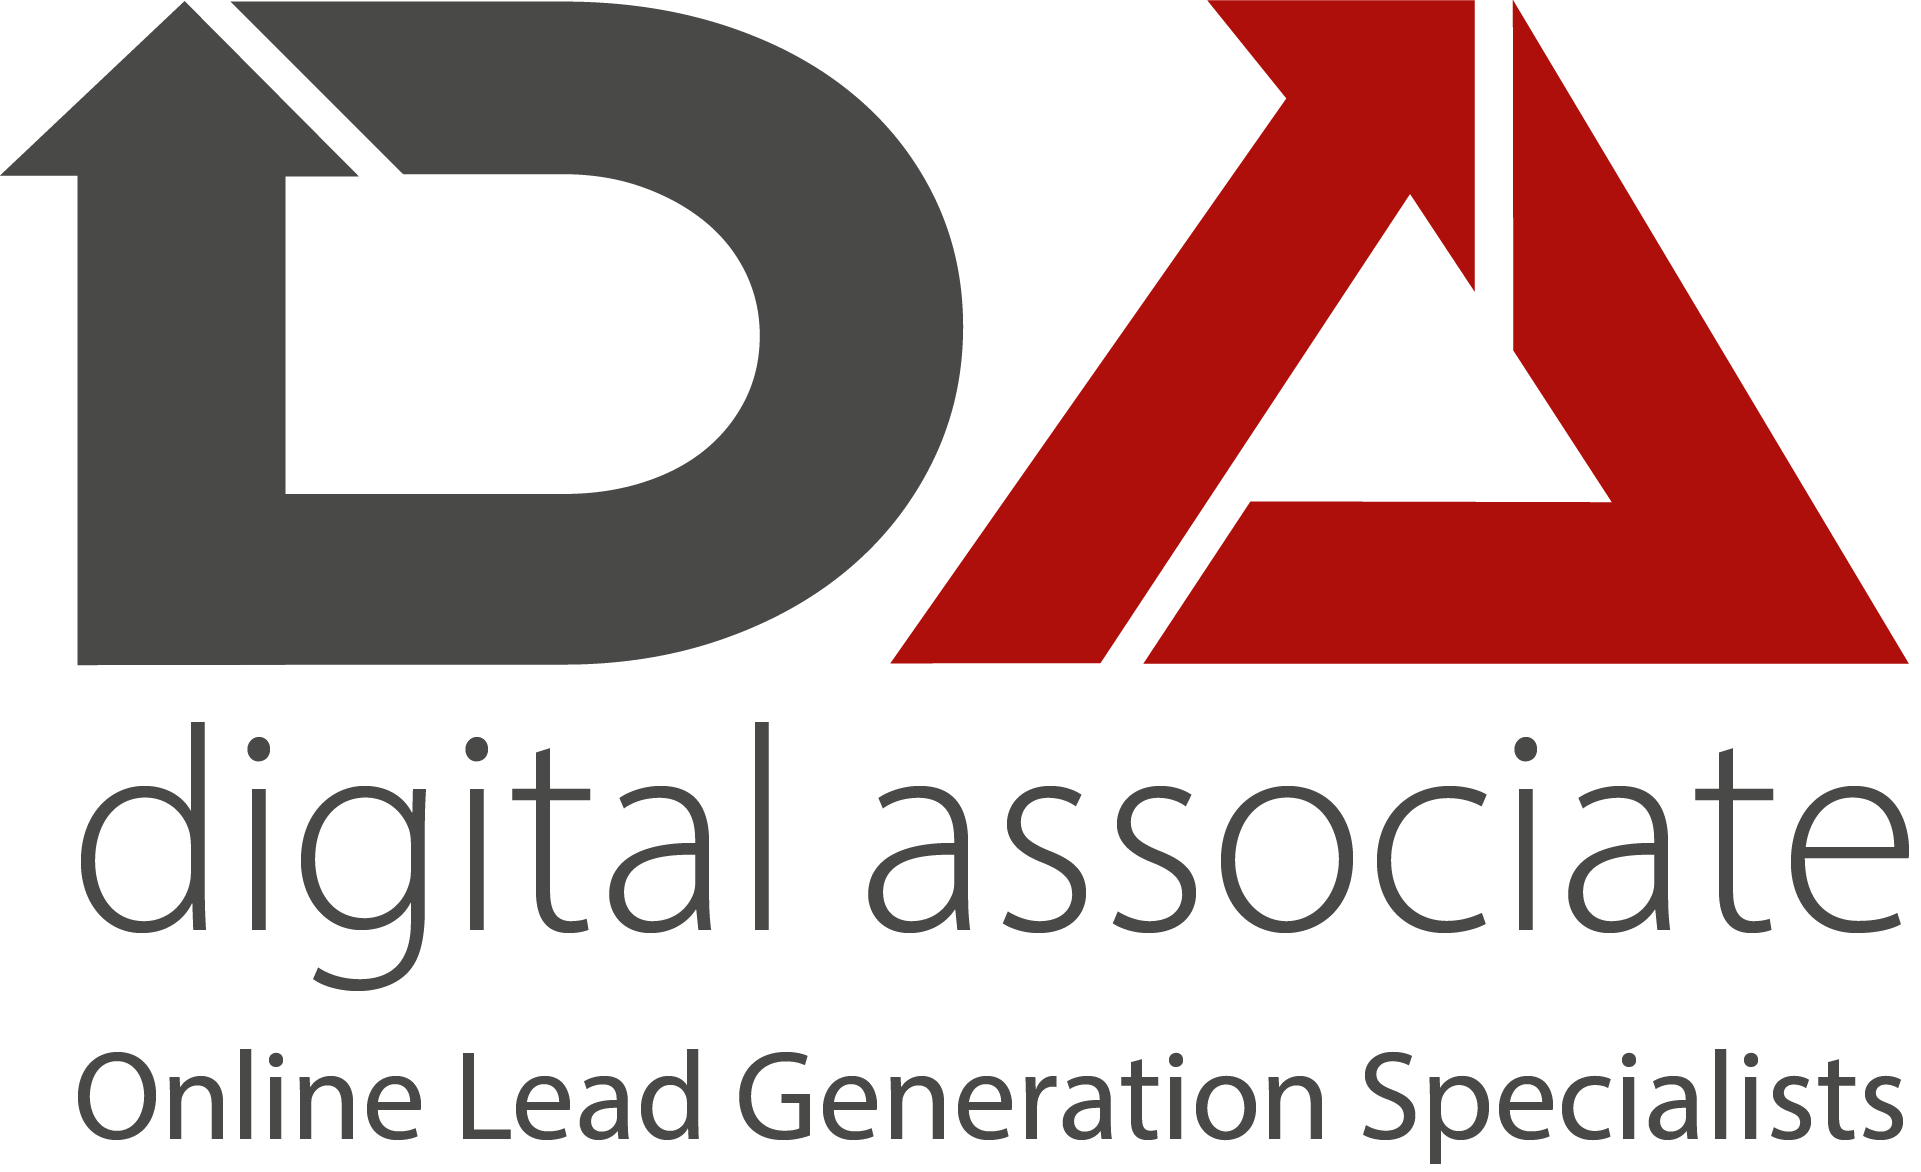 Digital Associate Logo - Online Lead Generation Specialists